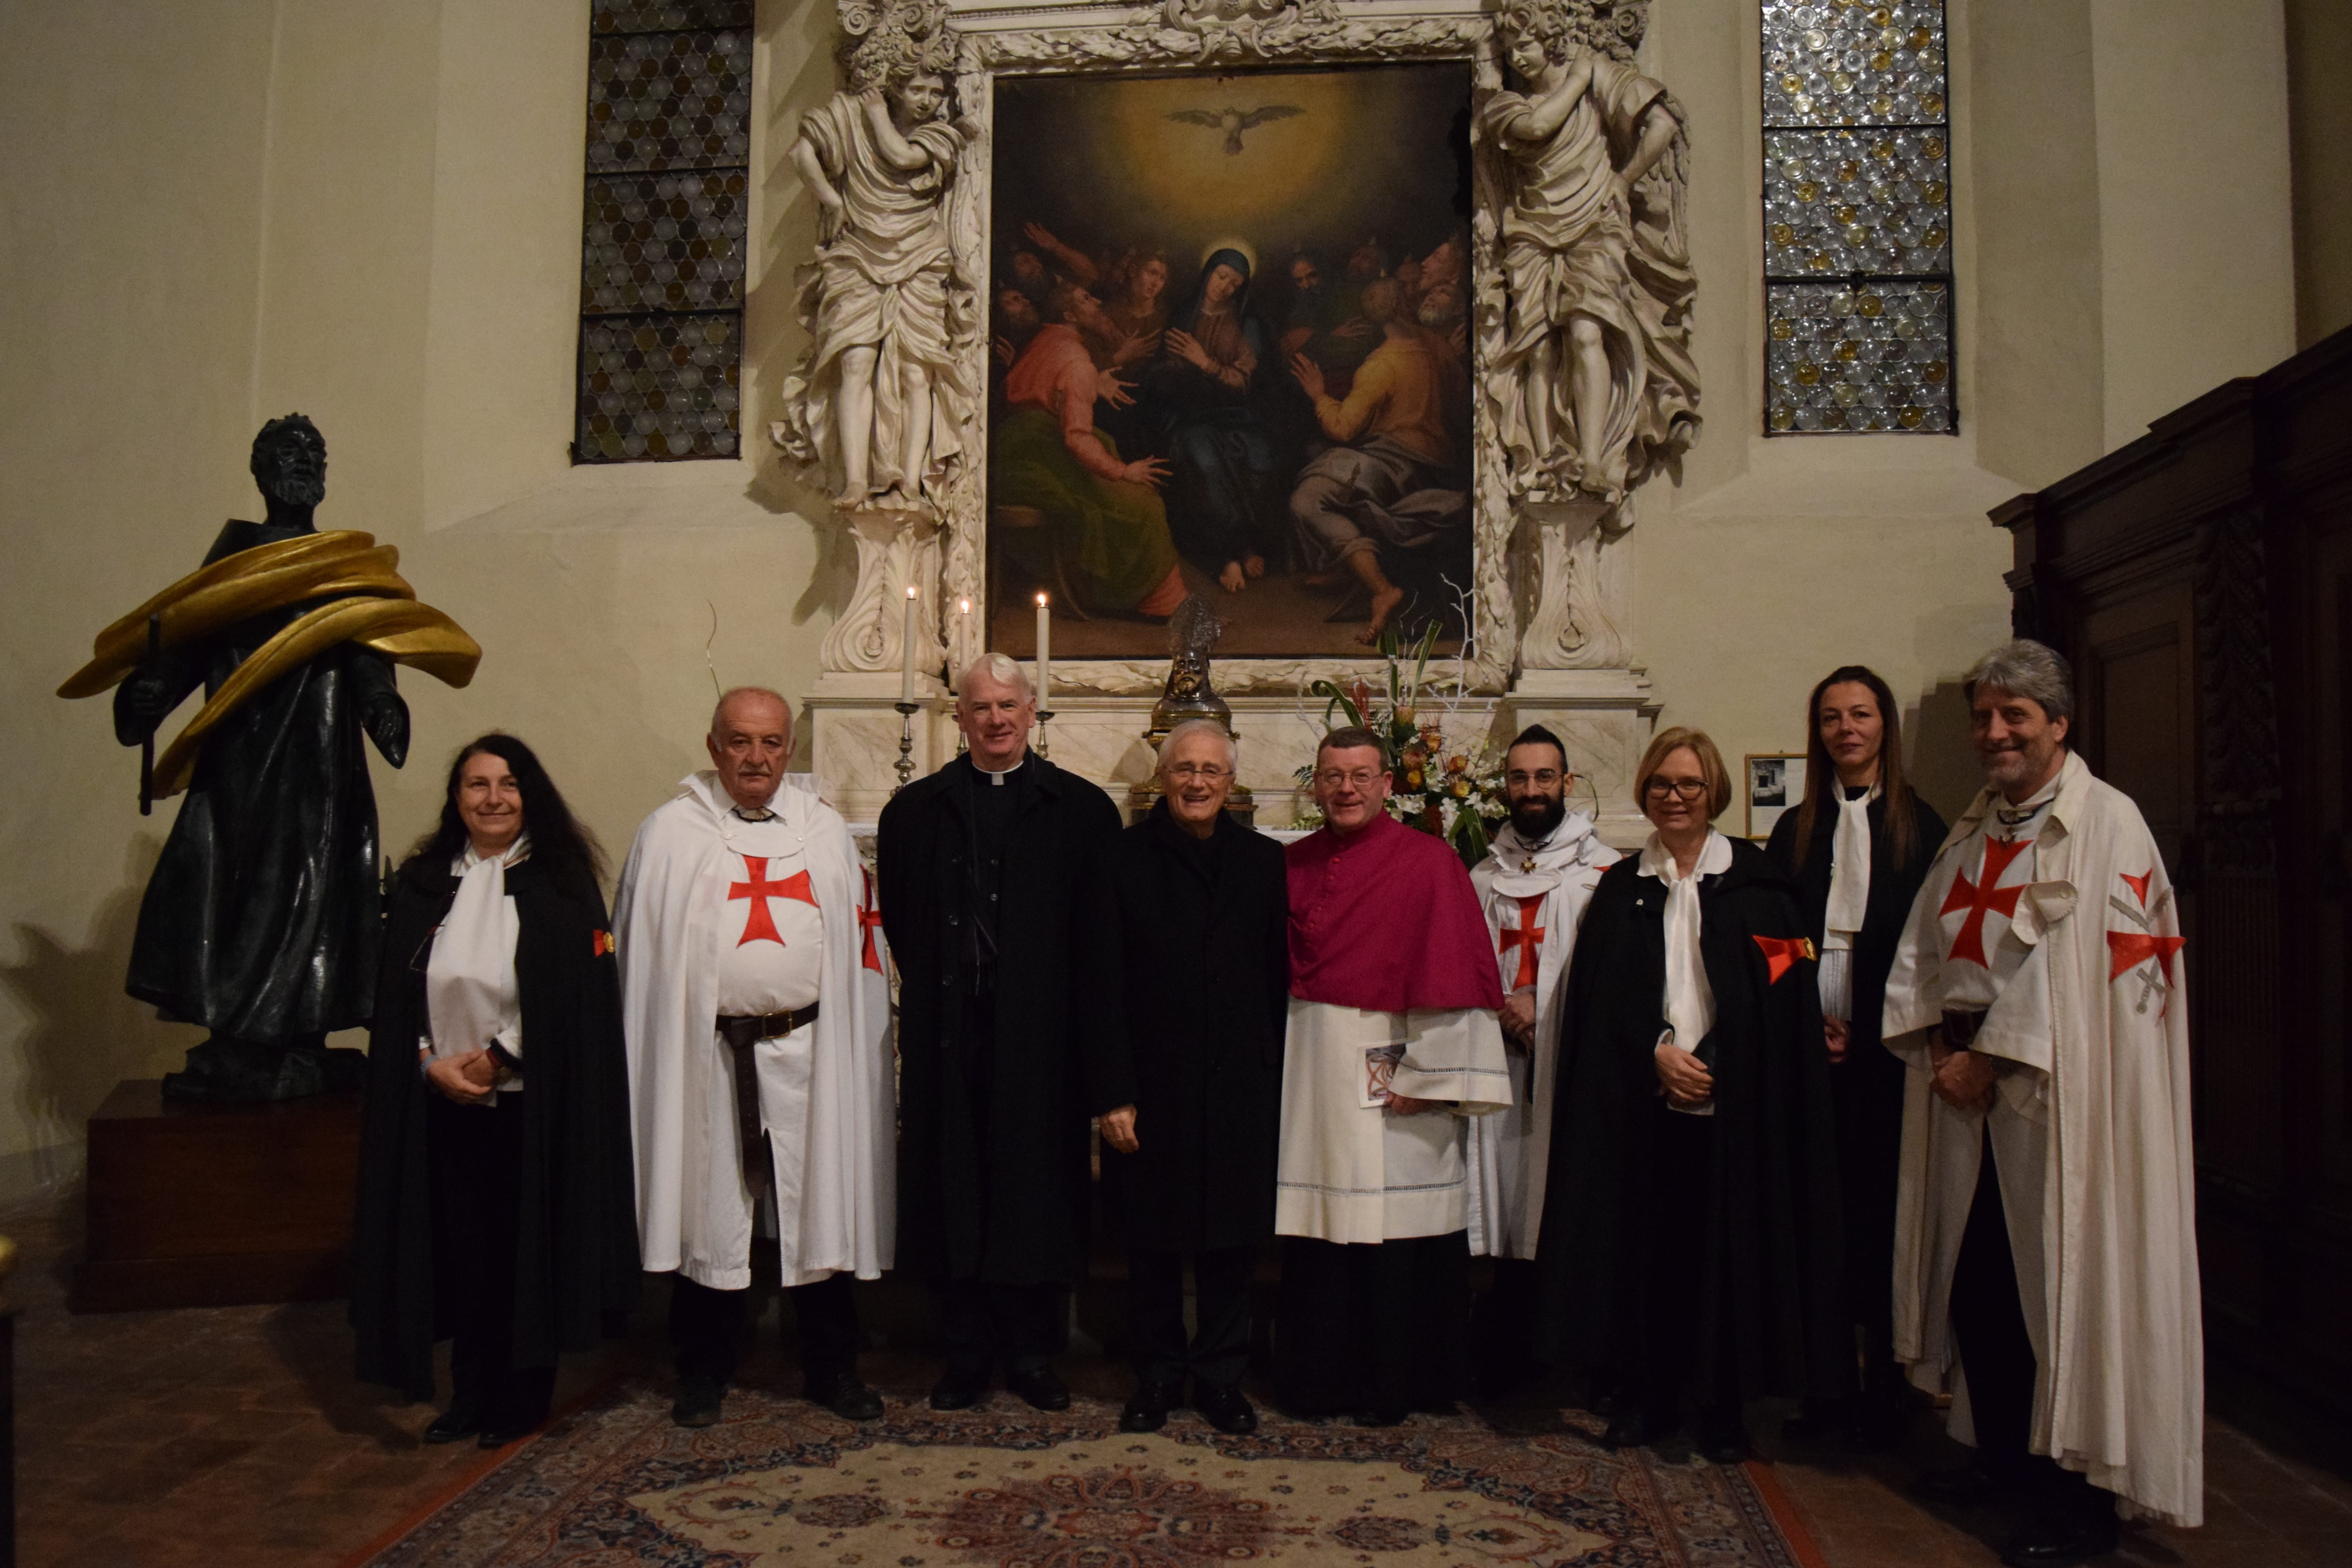 With the Bishop of Belfast on 22 and 23 November the Catholic Templars take part in the solemn celebrations for the feast of San Colombano in Bobbio.